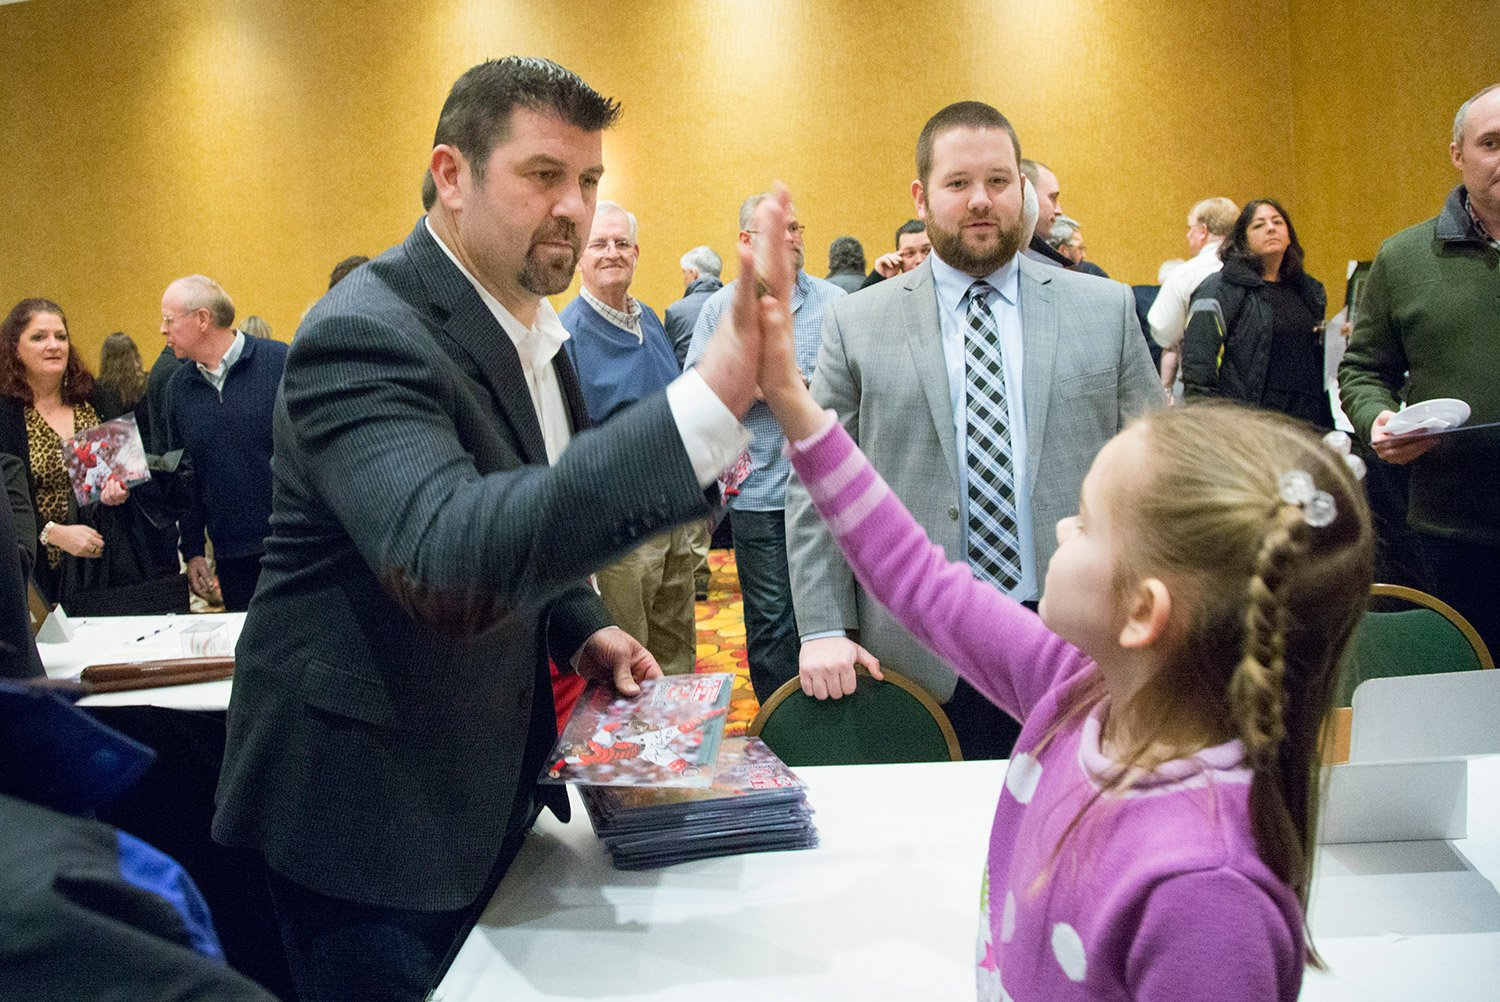 Jason Varitek, the catcher for Boston's 2004 and 2007 World Series championship teams, gives a high-five to Dominique Giroux-Pare, 8, of Winslow during the Portland Sea Dogs' annual Hot Stove Dinner on Friday night.